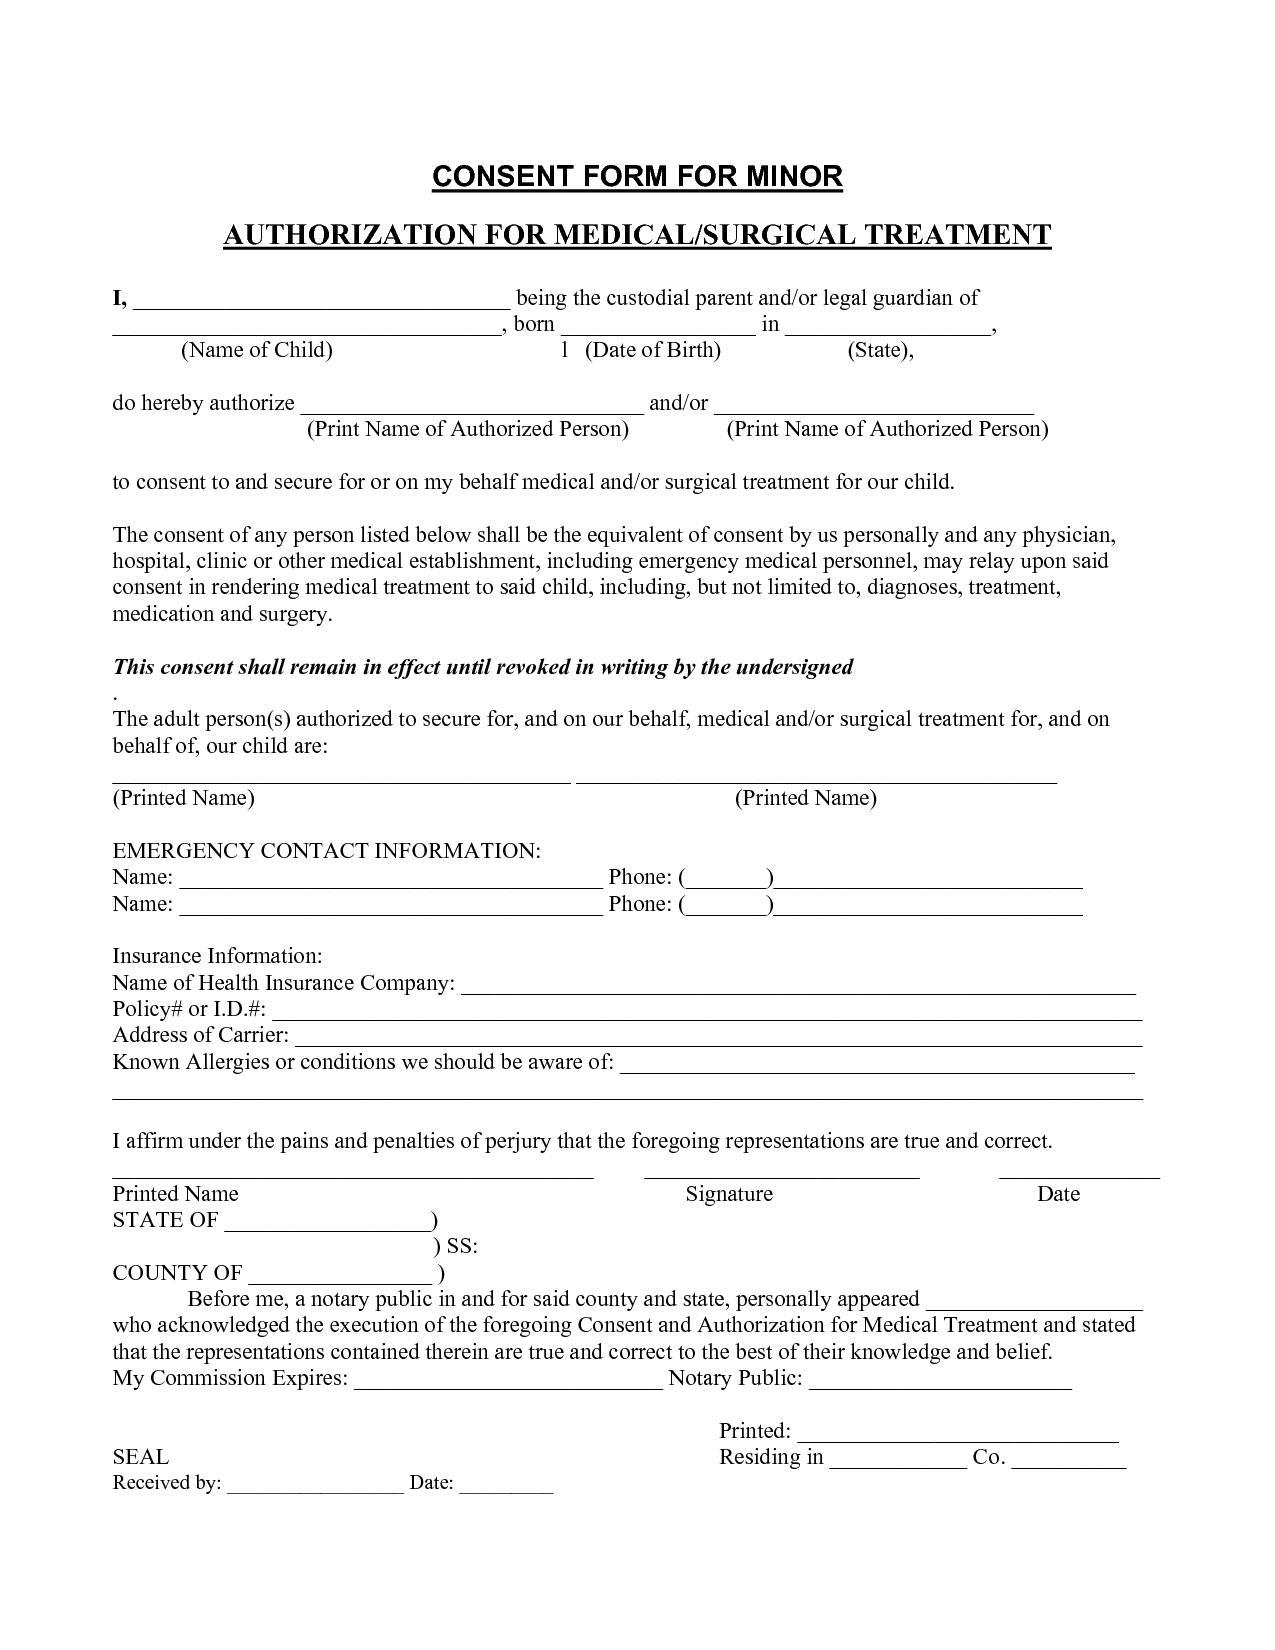 Medical Consent Form Template. parent medical consent form free